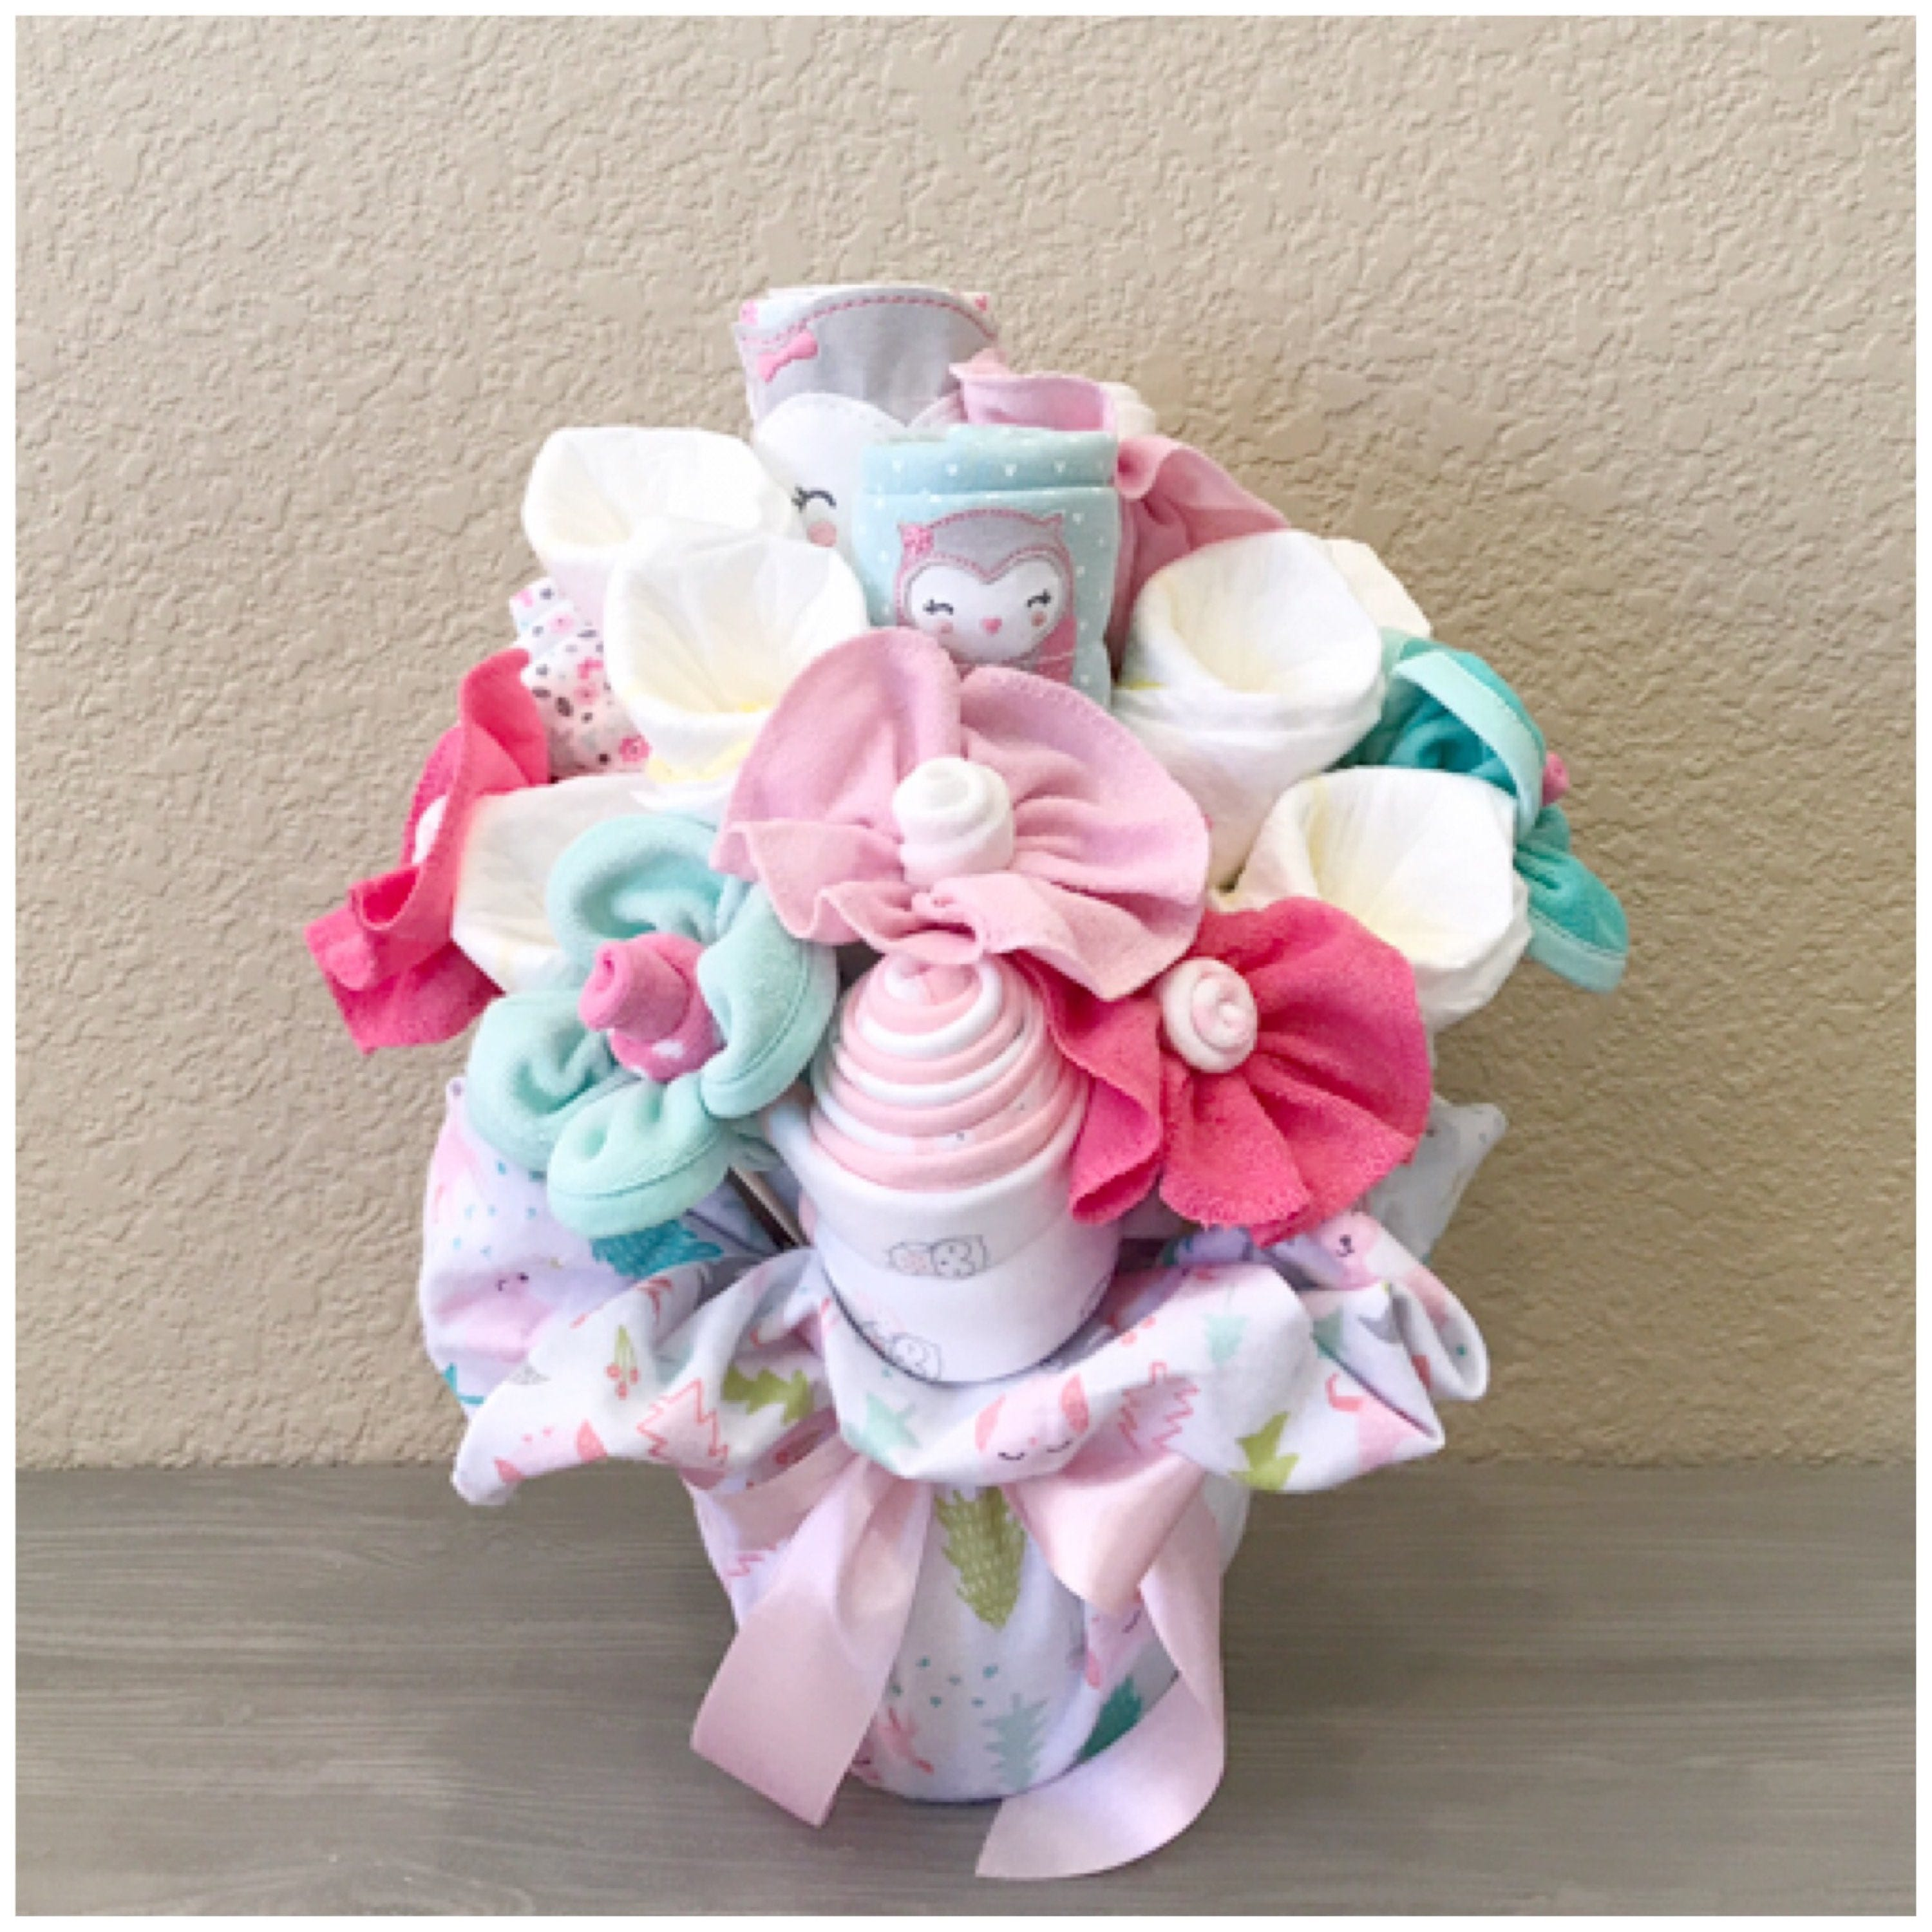 Baby gift for girl pink and teal owl themed baby clothing baby gift for girl pink and teal owl themed baby clothing bouquet floral nursery decor owl baby shower centerpiecegift negle Choice Image